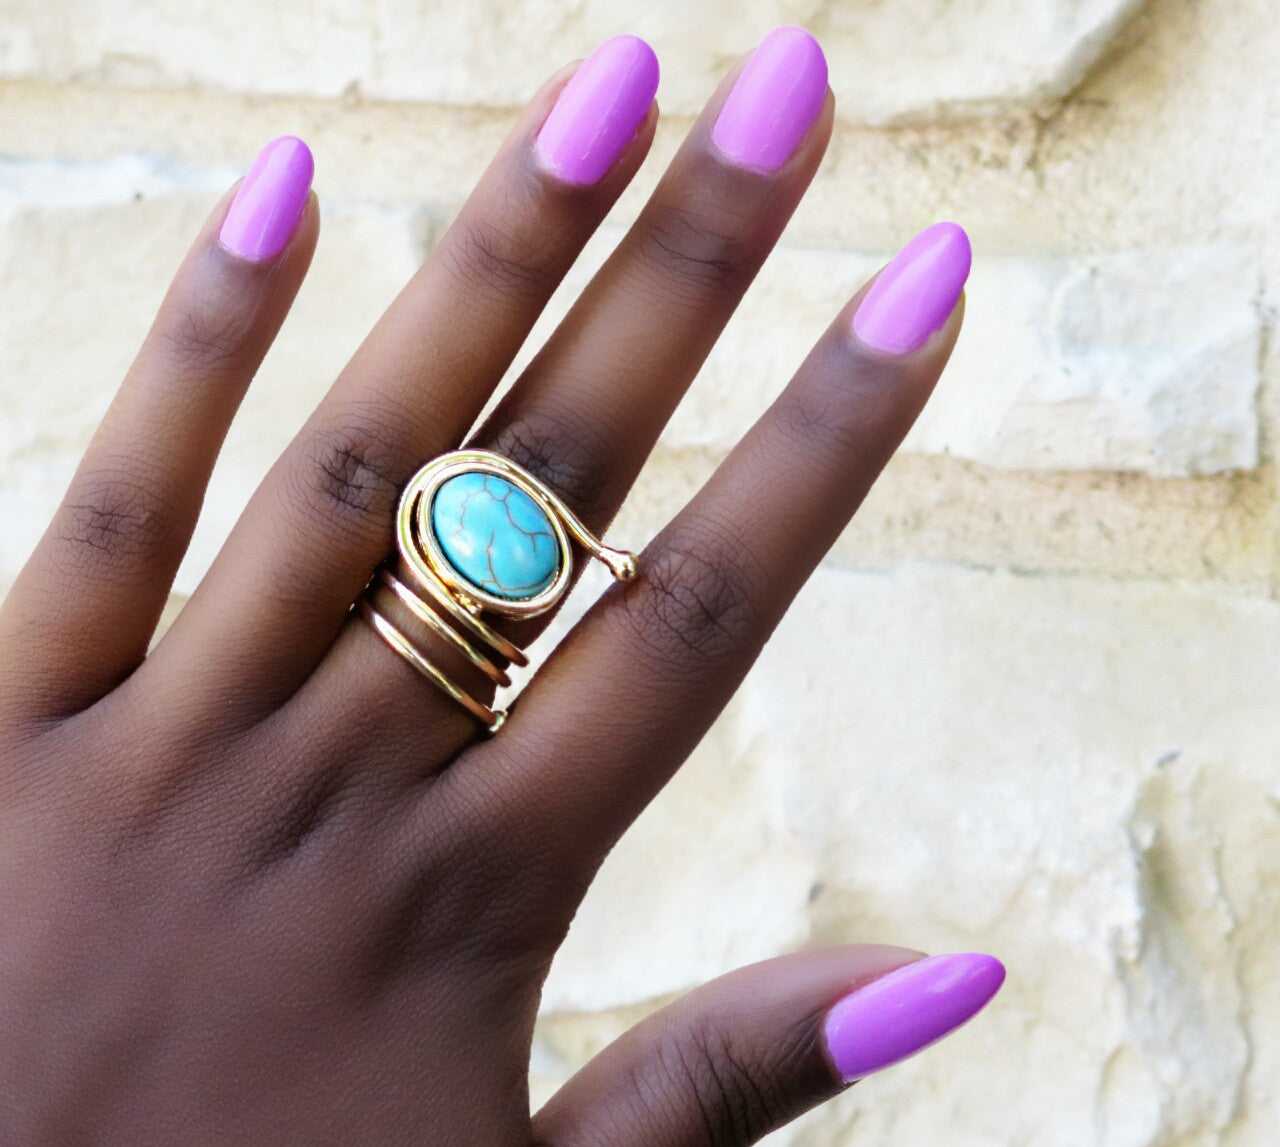 Precious Stone Coiled Statement Ring - Turquoise